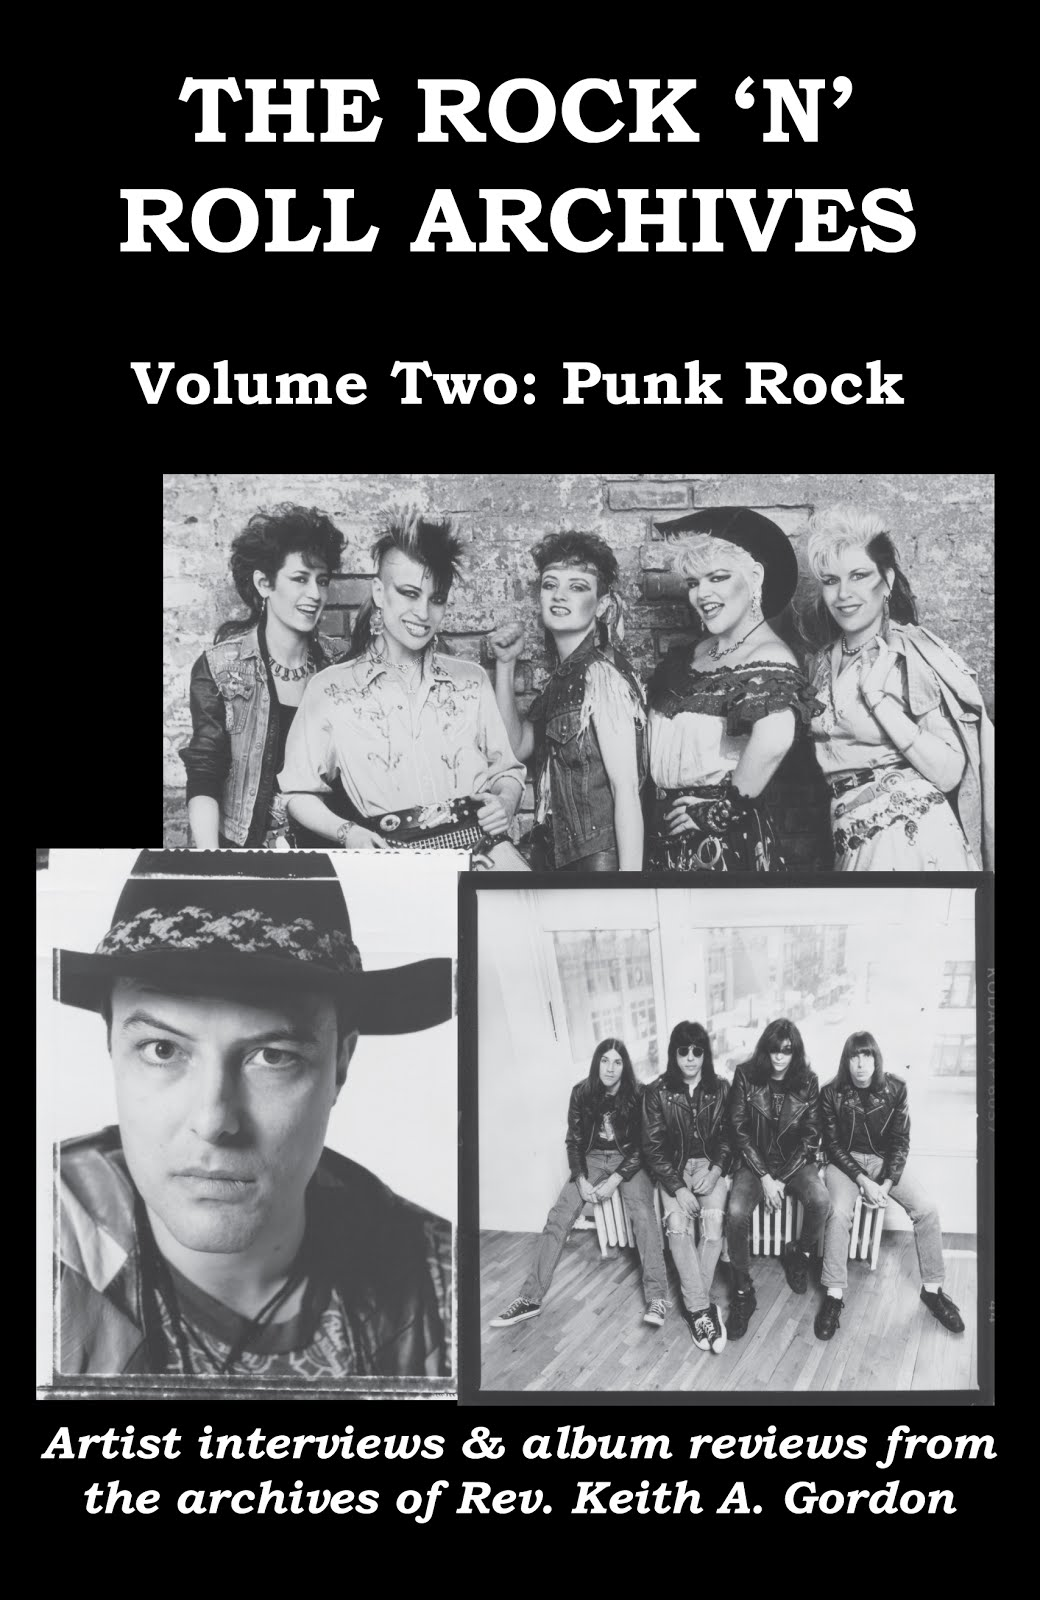 The Rock 'n' Roll Archives, Volume Two: Punk Rock